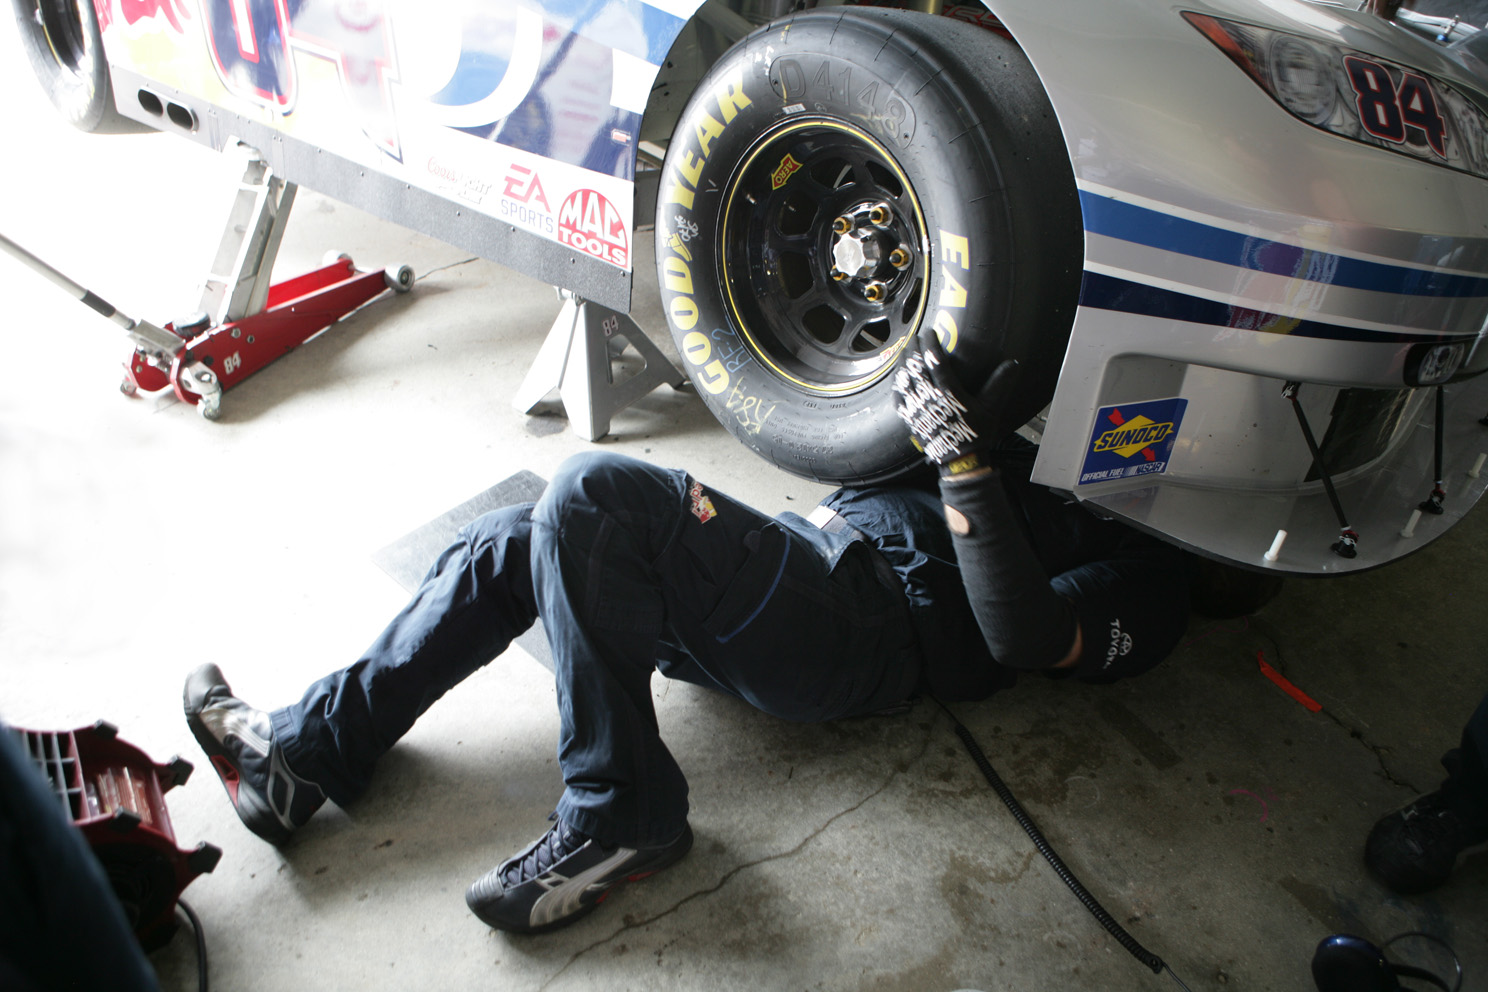 A Red Bull Team Member works on the car